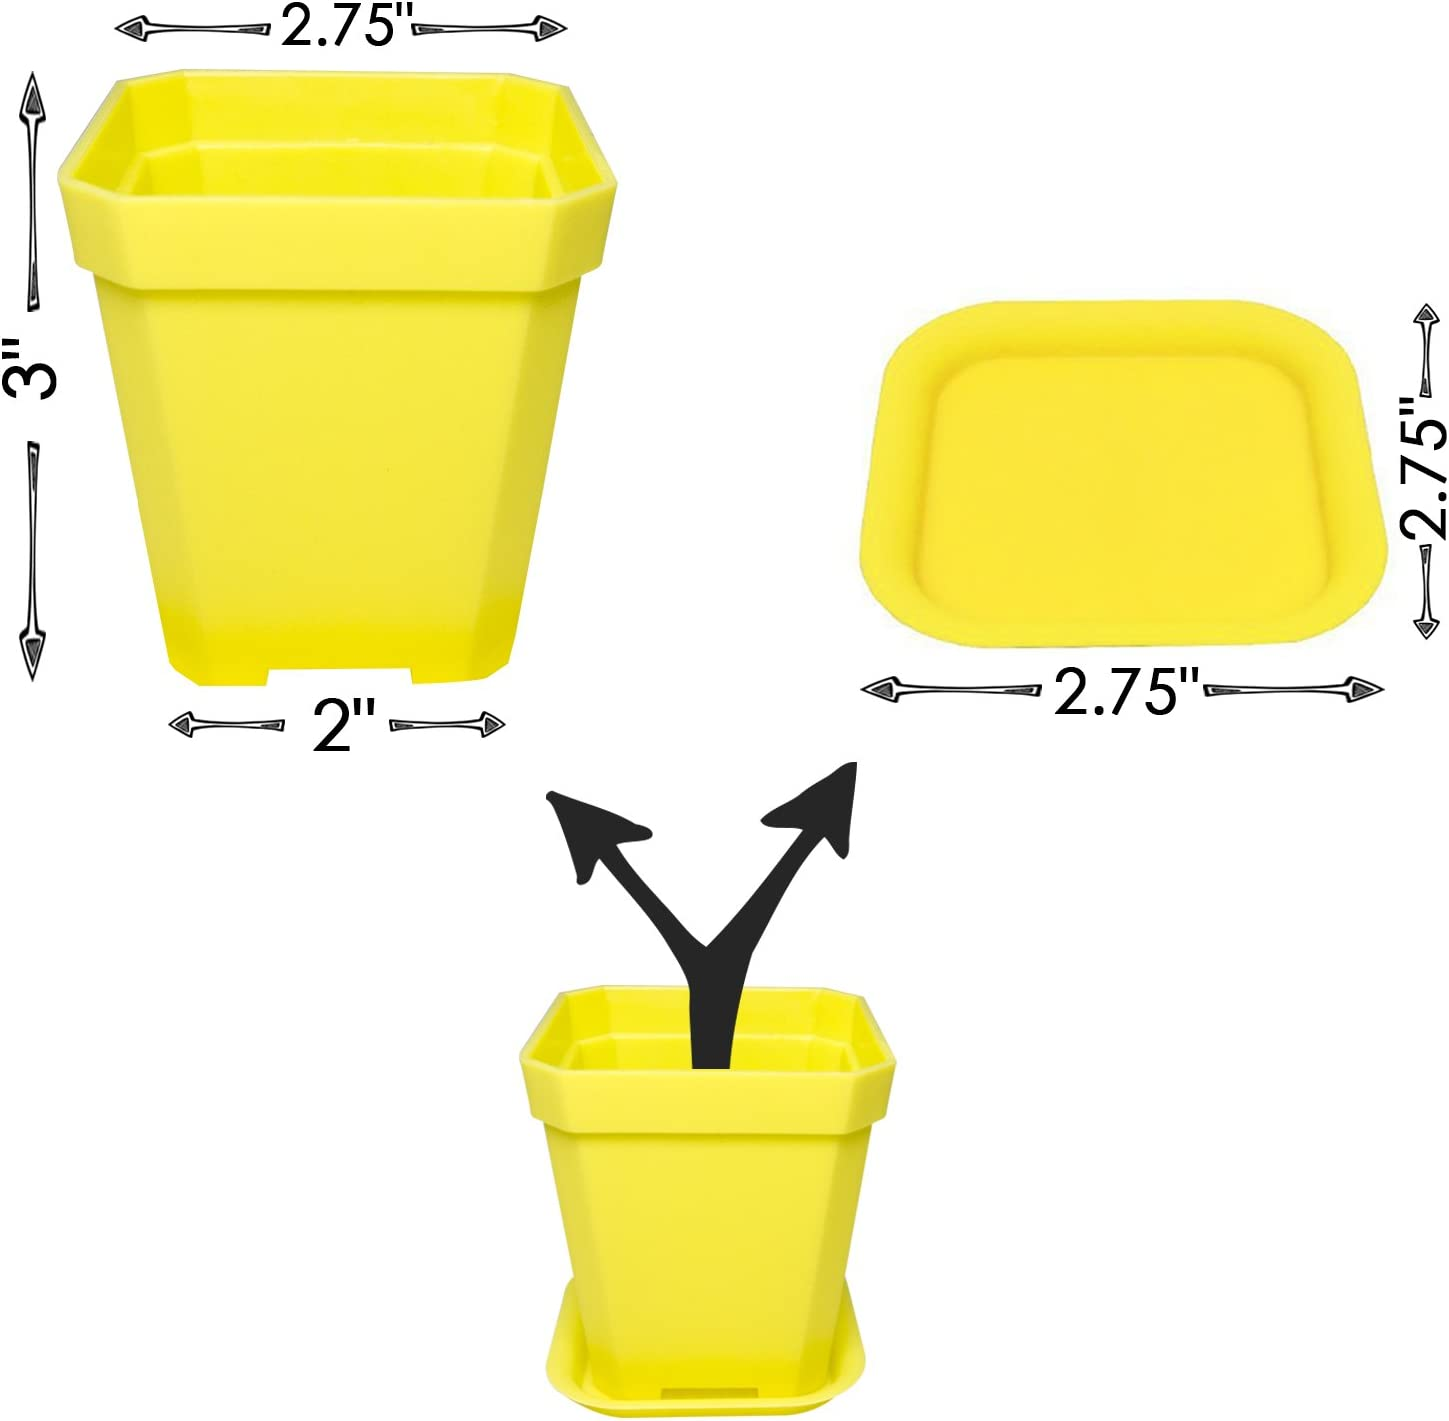 KORAM 14-Pack Colorful Flower Pots 2.7-inch Square Plastic Plant Pot for Mini Succulents Cactus, Container Planter Nursery Pots with Drain Hole and Saucer for Home Office Garden – Makes a Great Gift